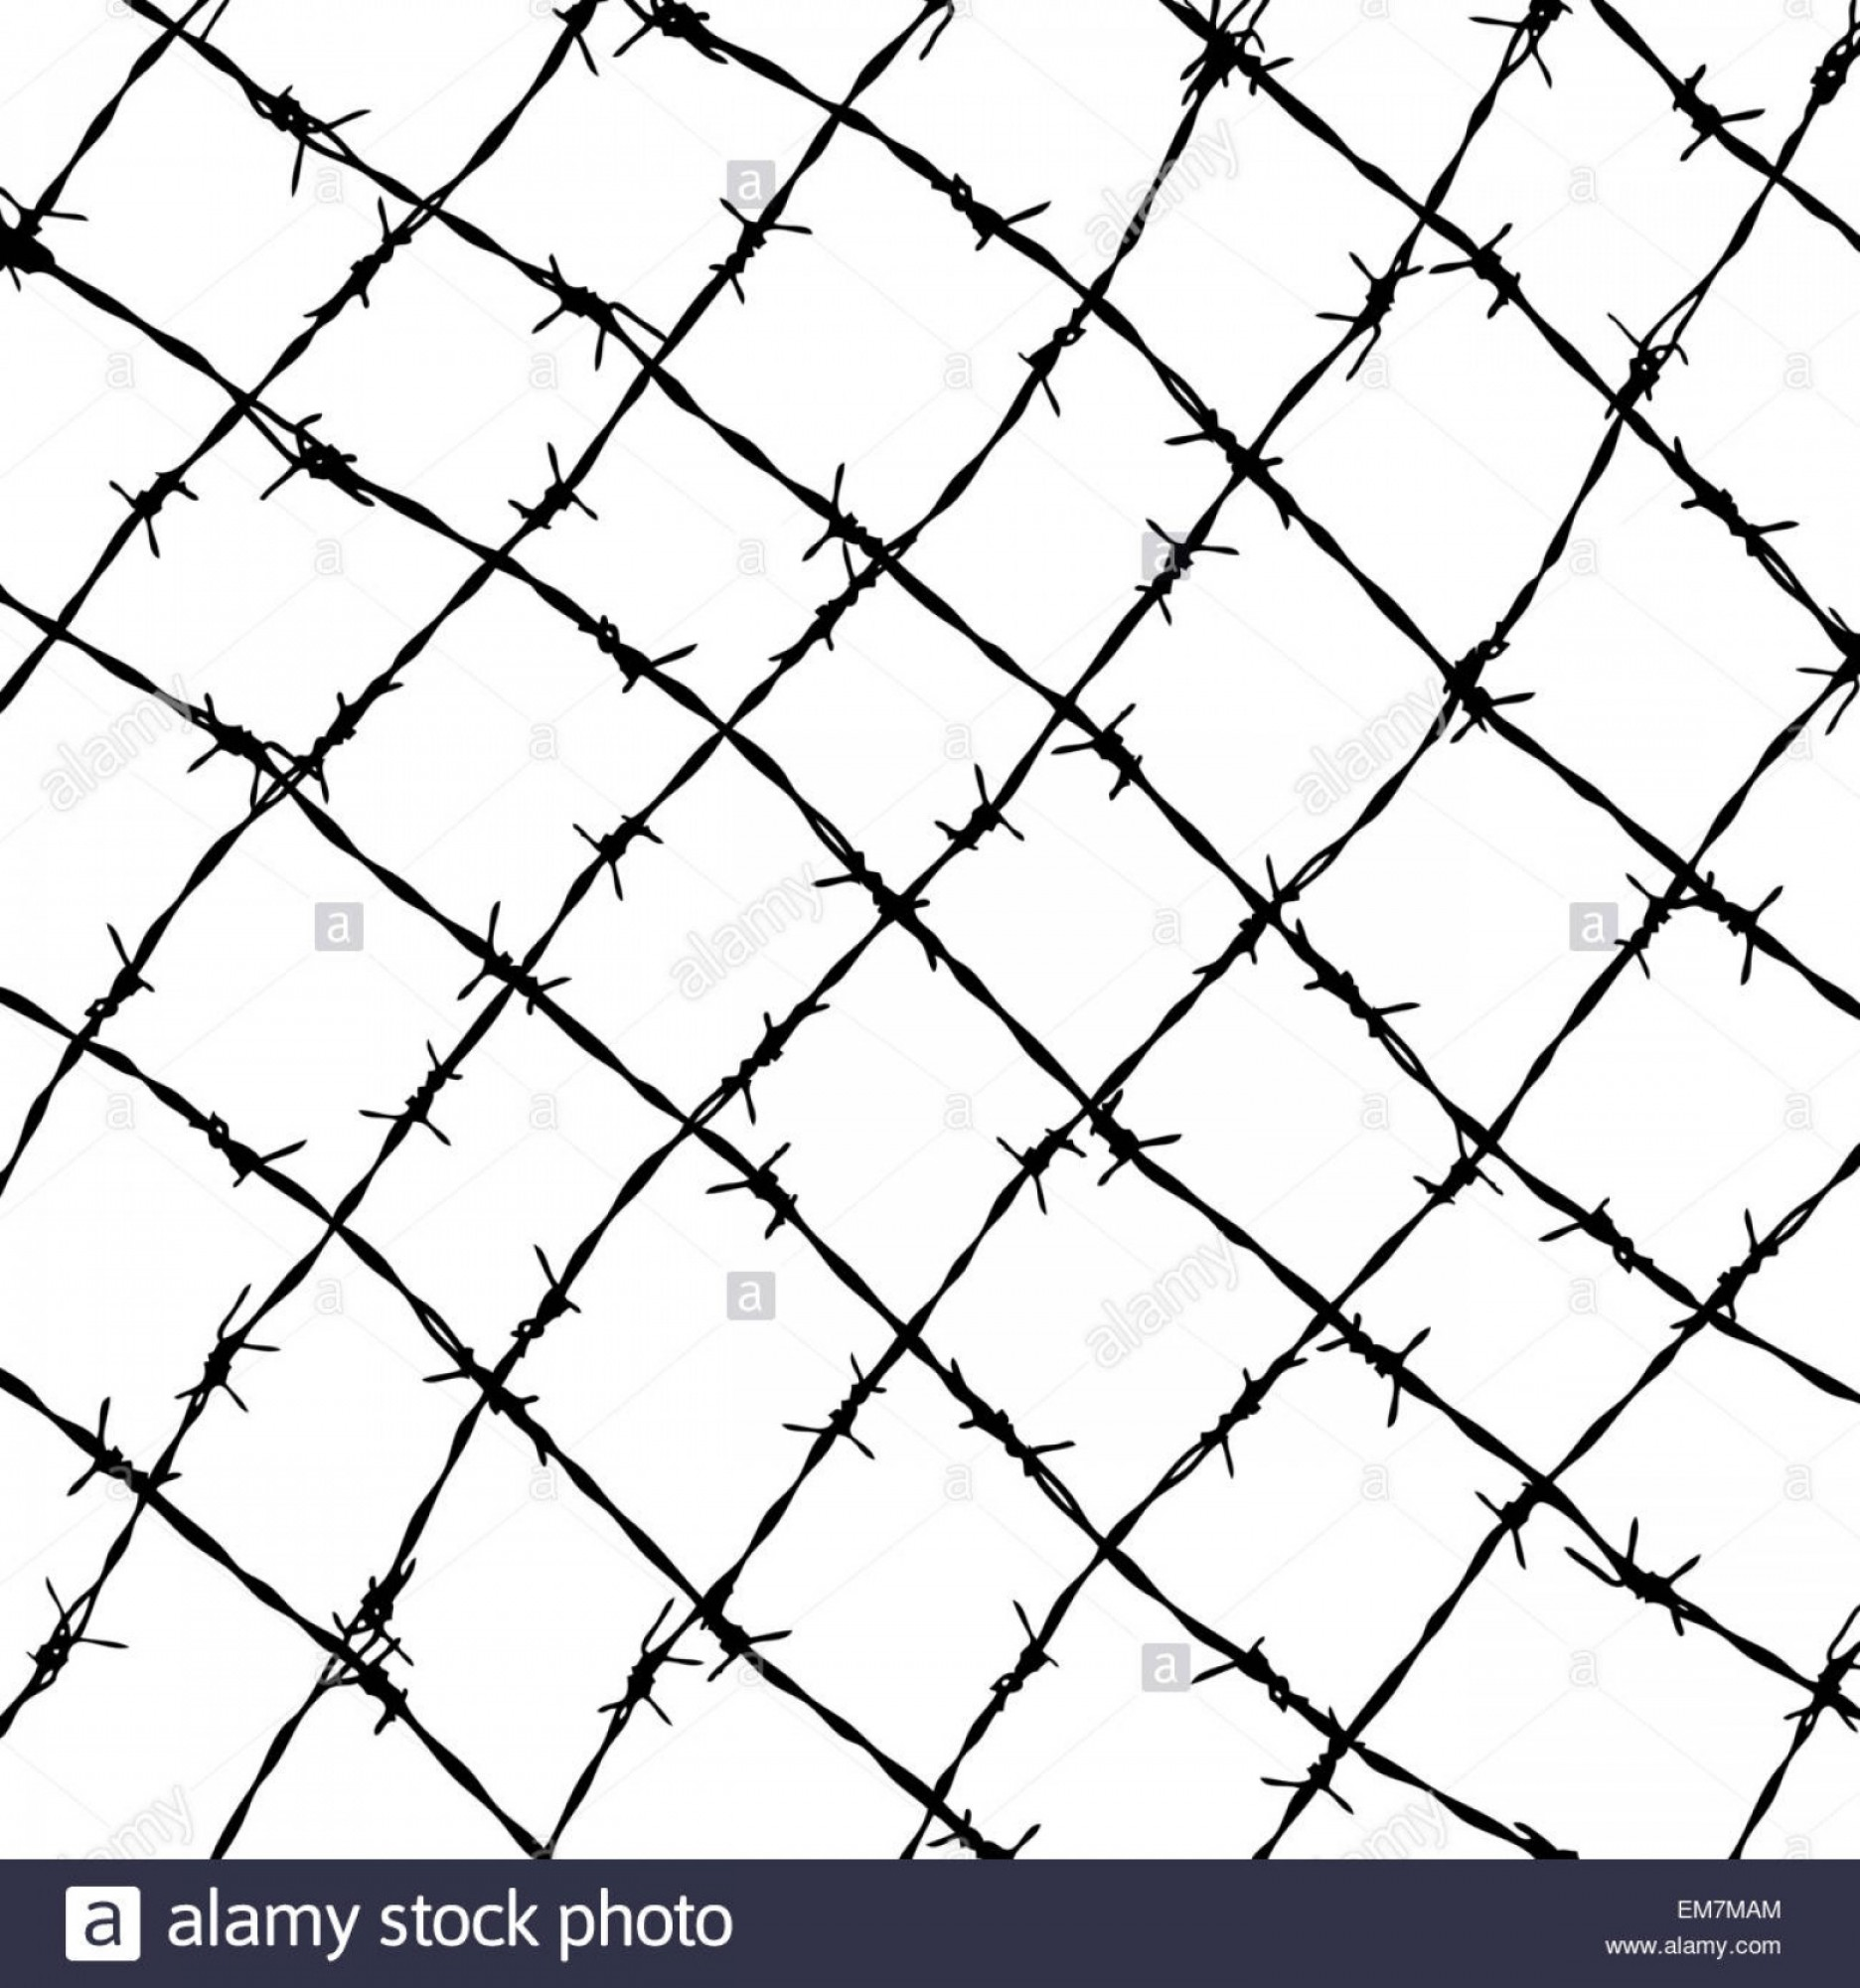 Fence Post Barbed Wire Vector Clip Art: Stock Photo Fence From Barbed Wires